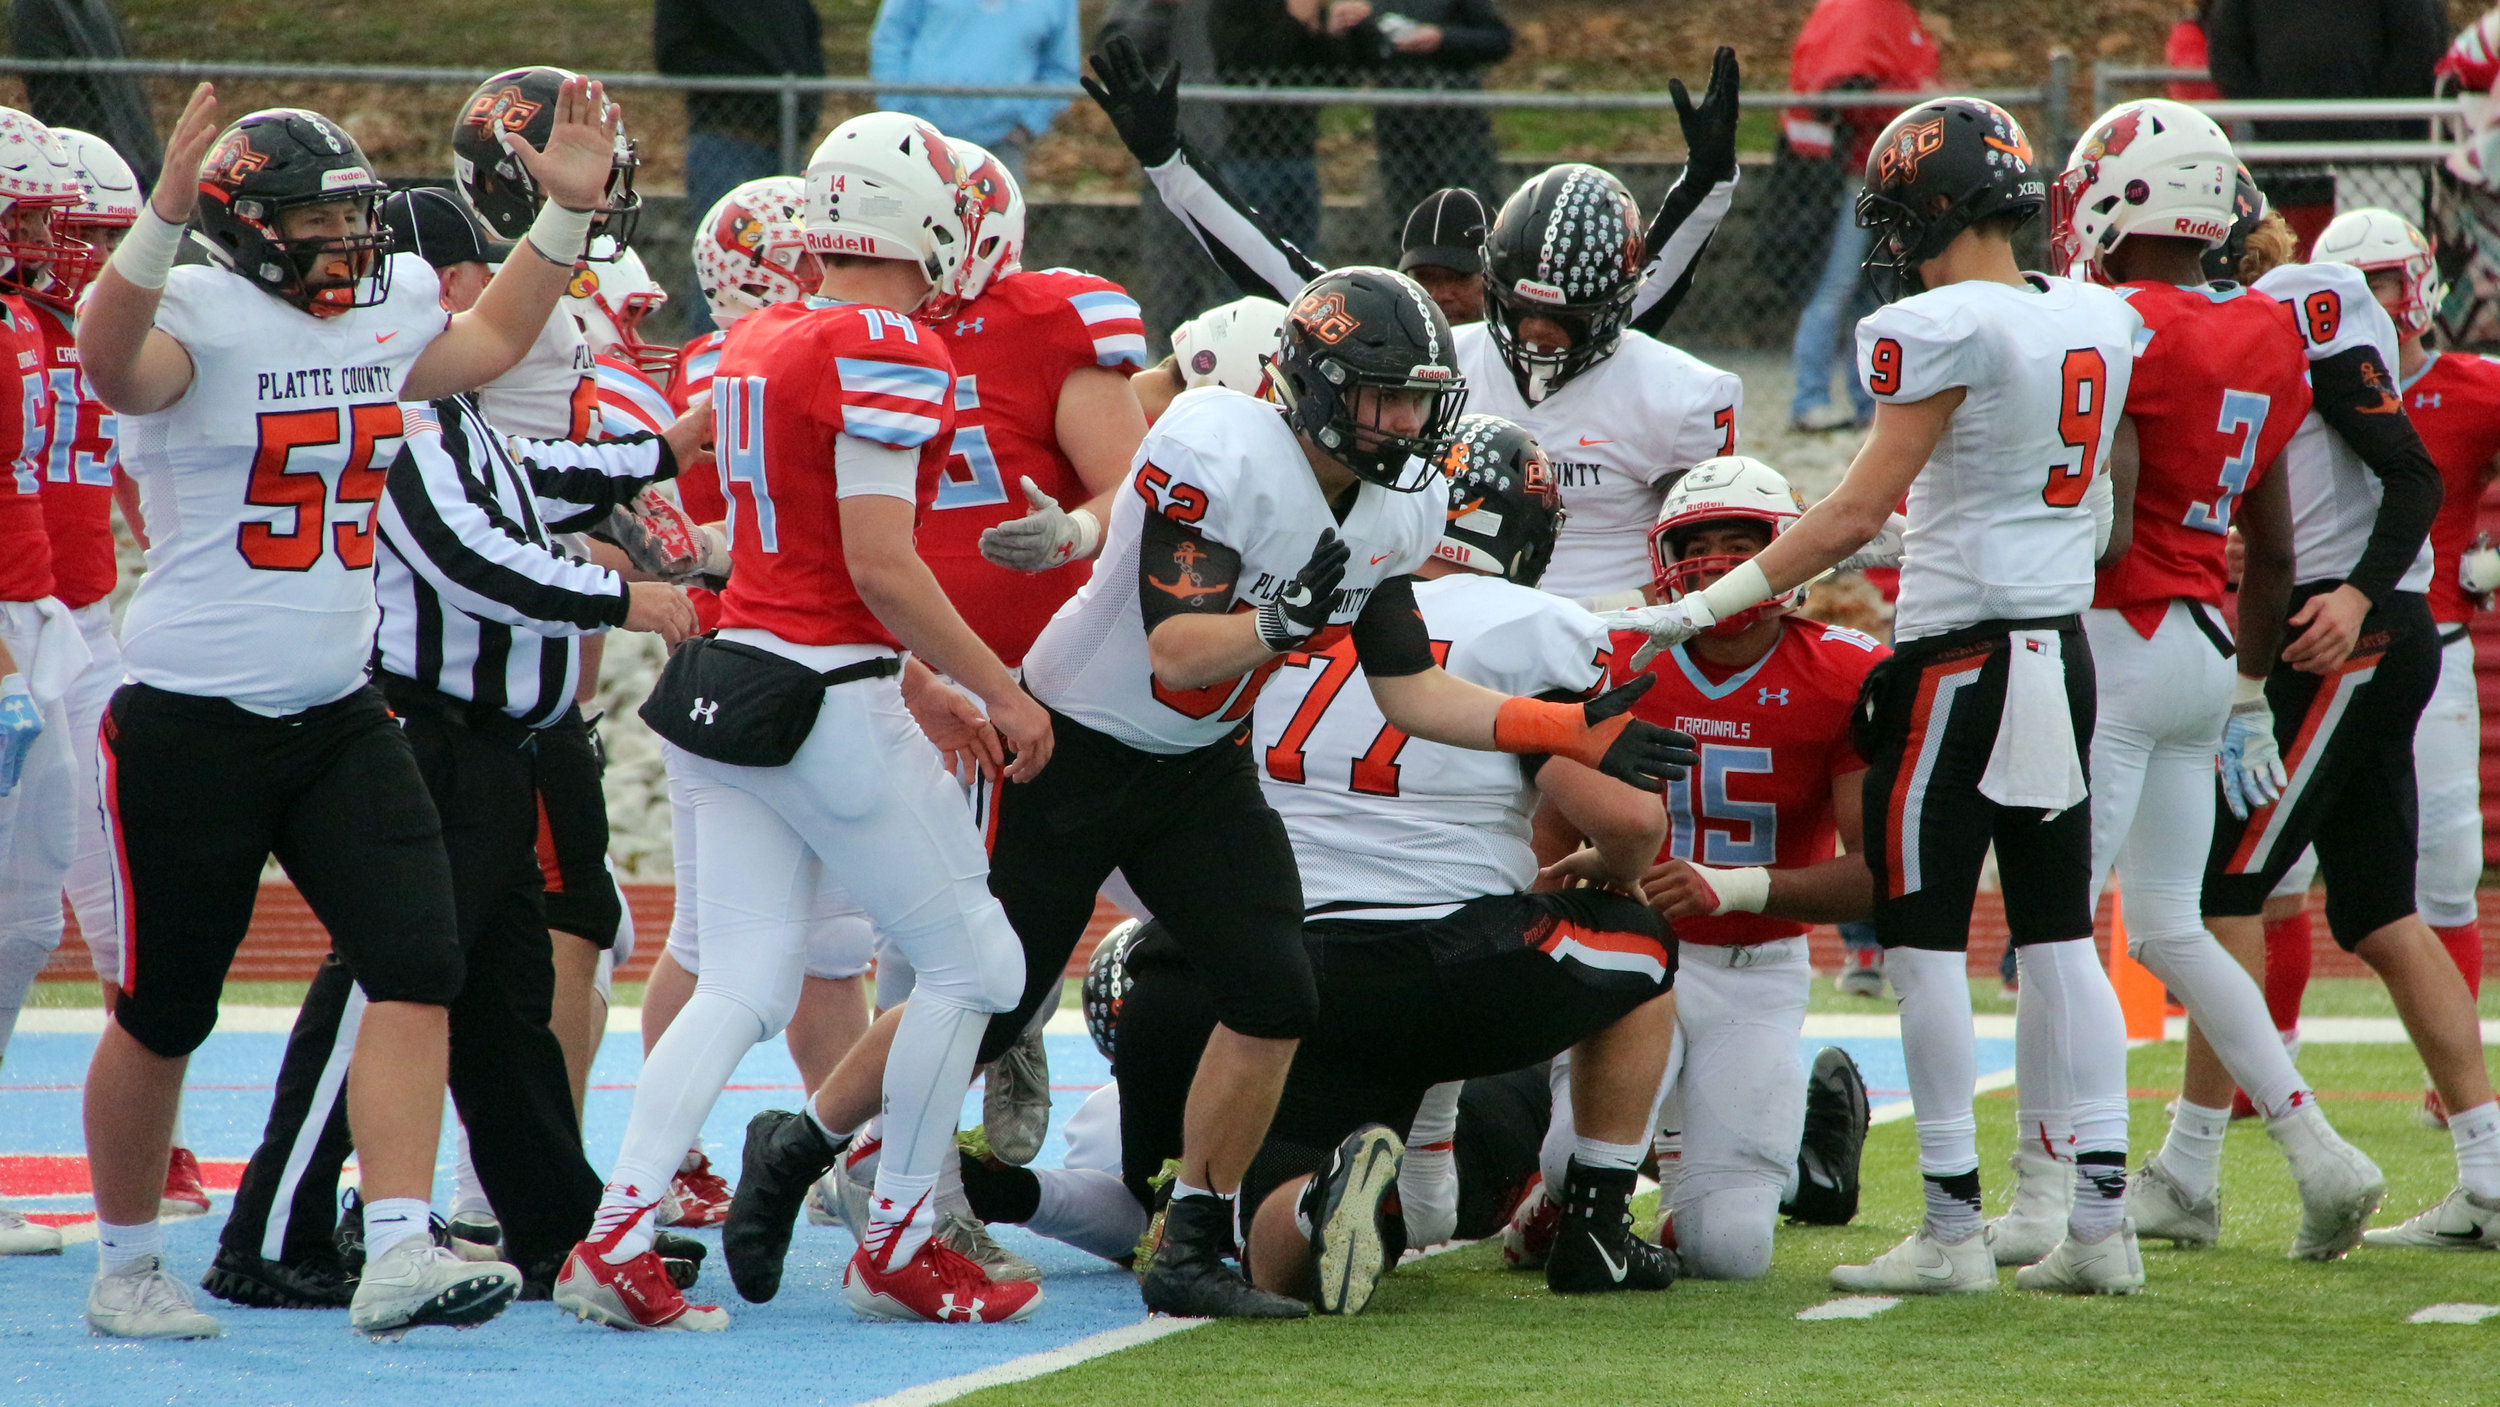 ROSS MARTIN/Citizen photo Platte County players, including offensive linemen Matt Blaha (55) and Peyton Stoner (52). celebrate a touchdown during a Class 4 semifinal Saturday, Nov. 18 at Cardinal Stadium in Webb City, Mo.